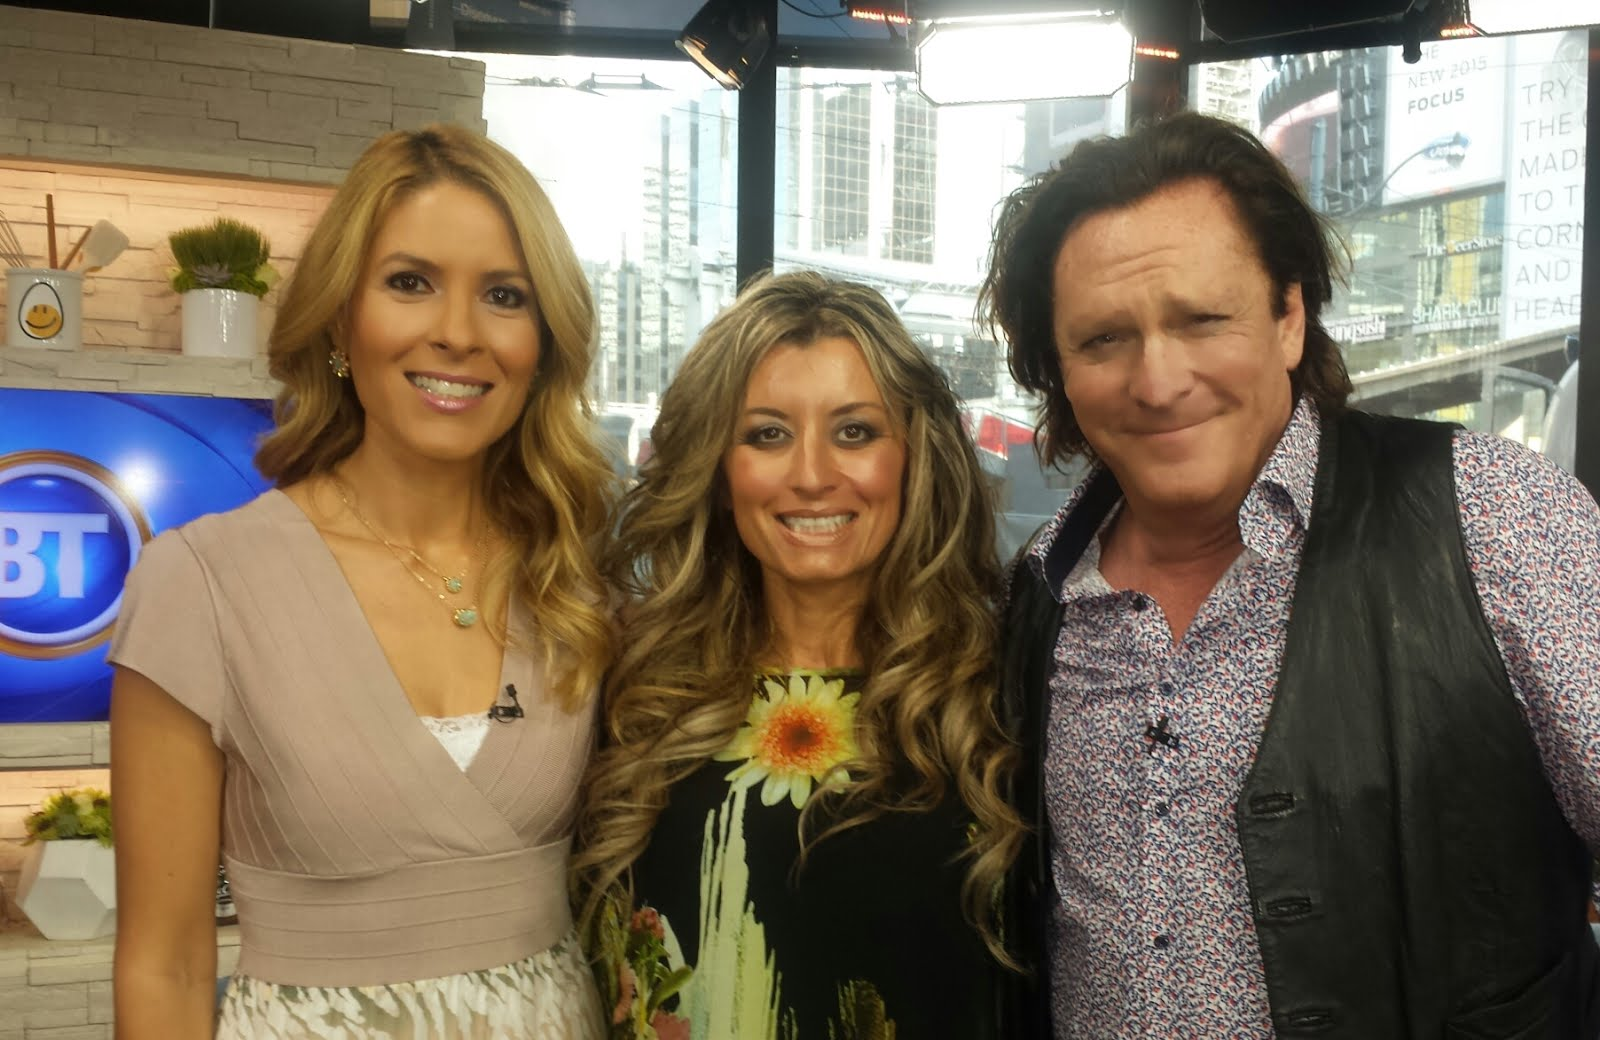 Dina Pugliese (BT Toronto) and actor Michael Madsen